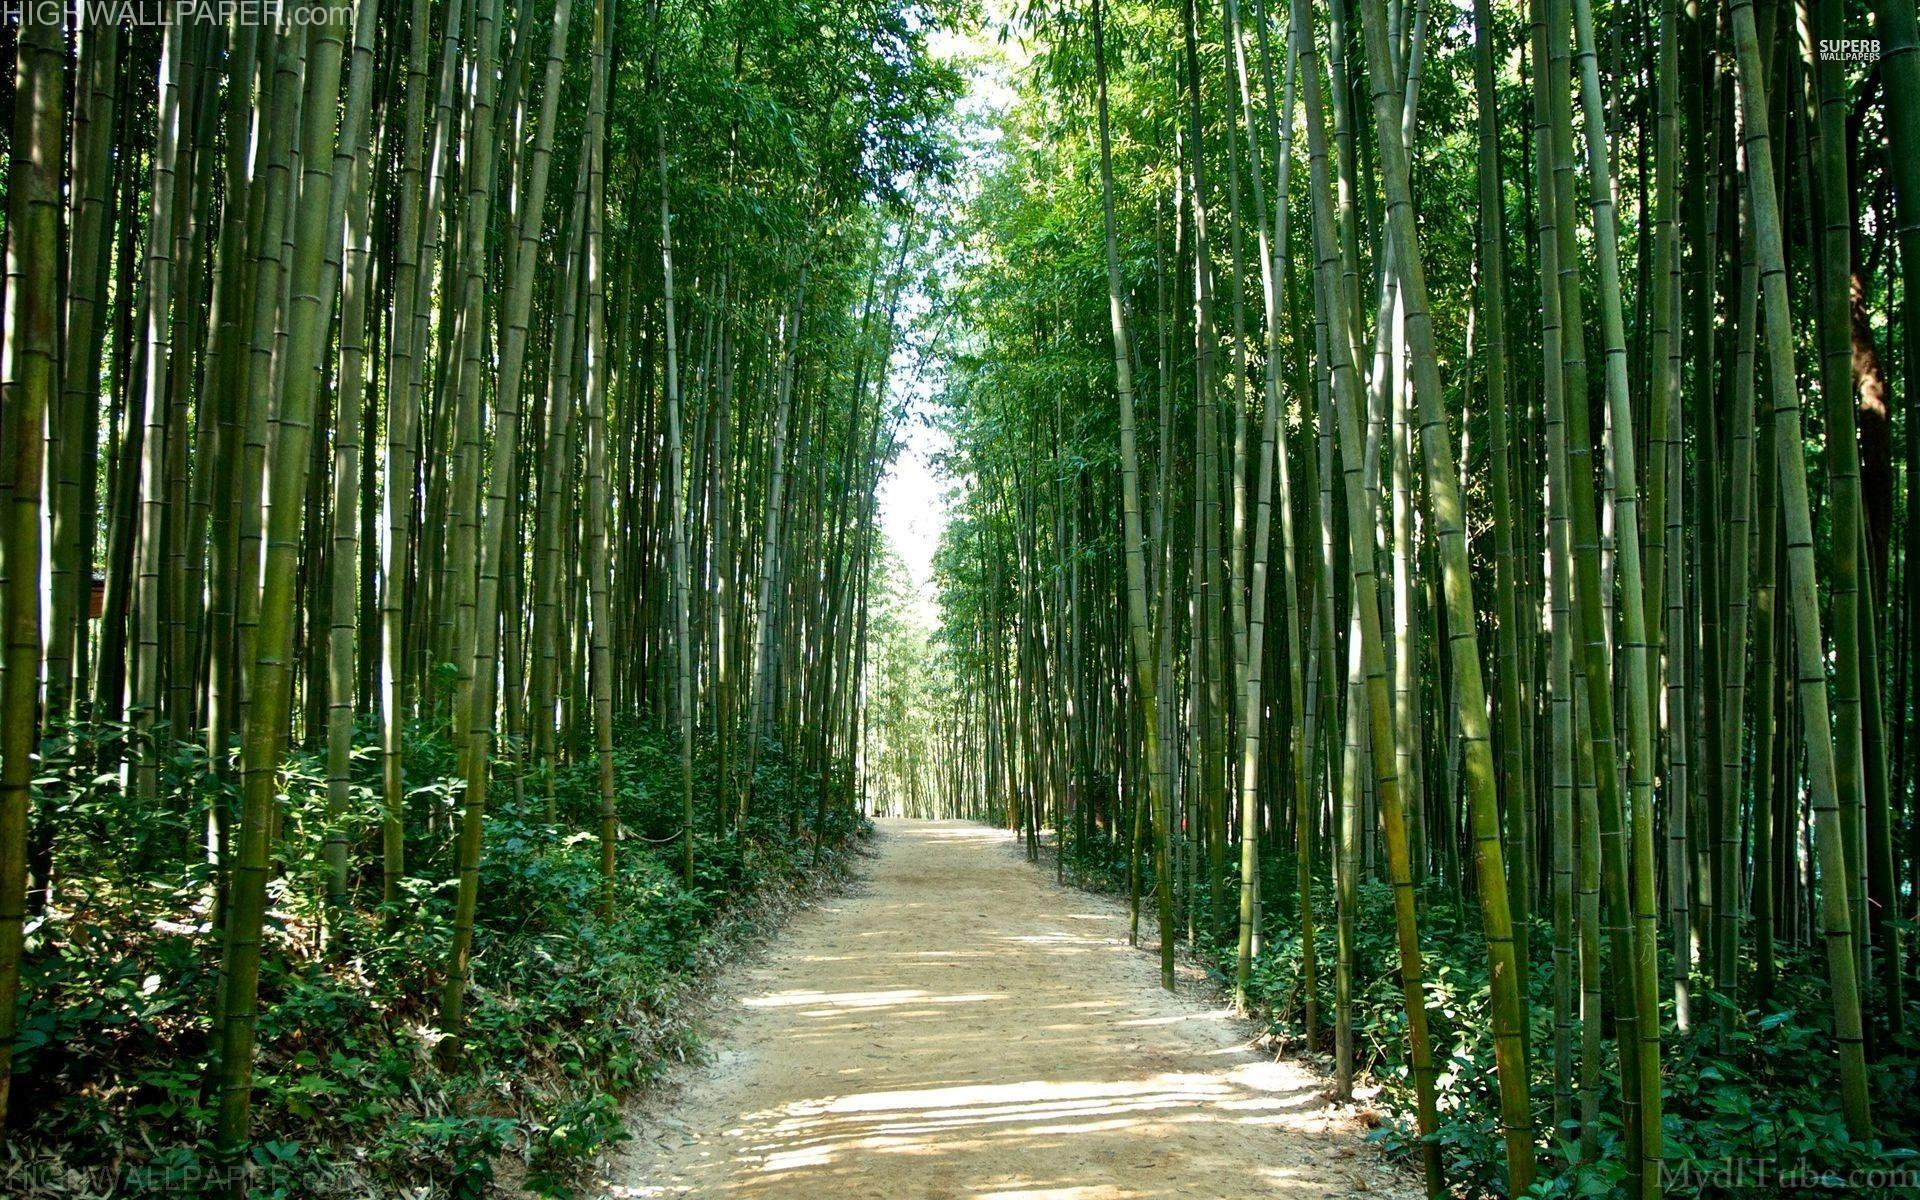 Road through Bamboo jungle